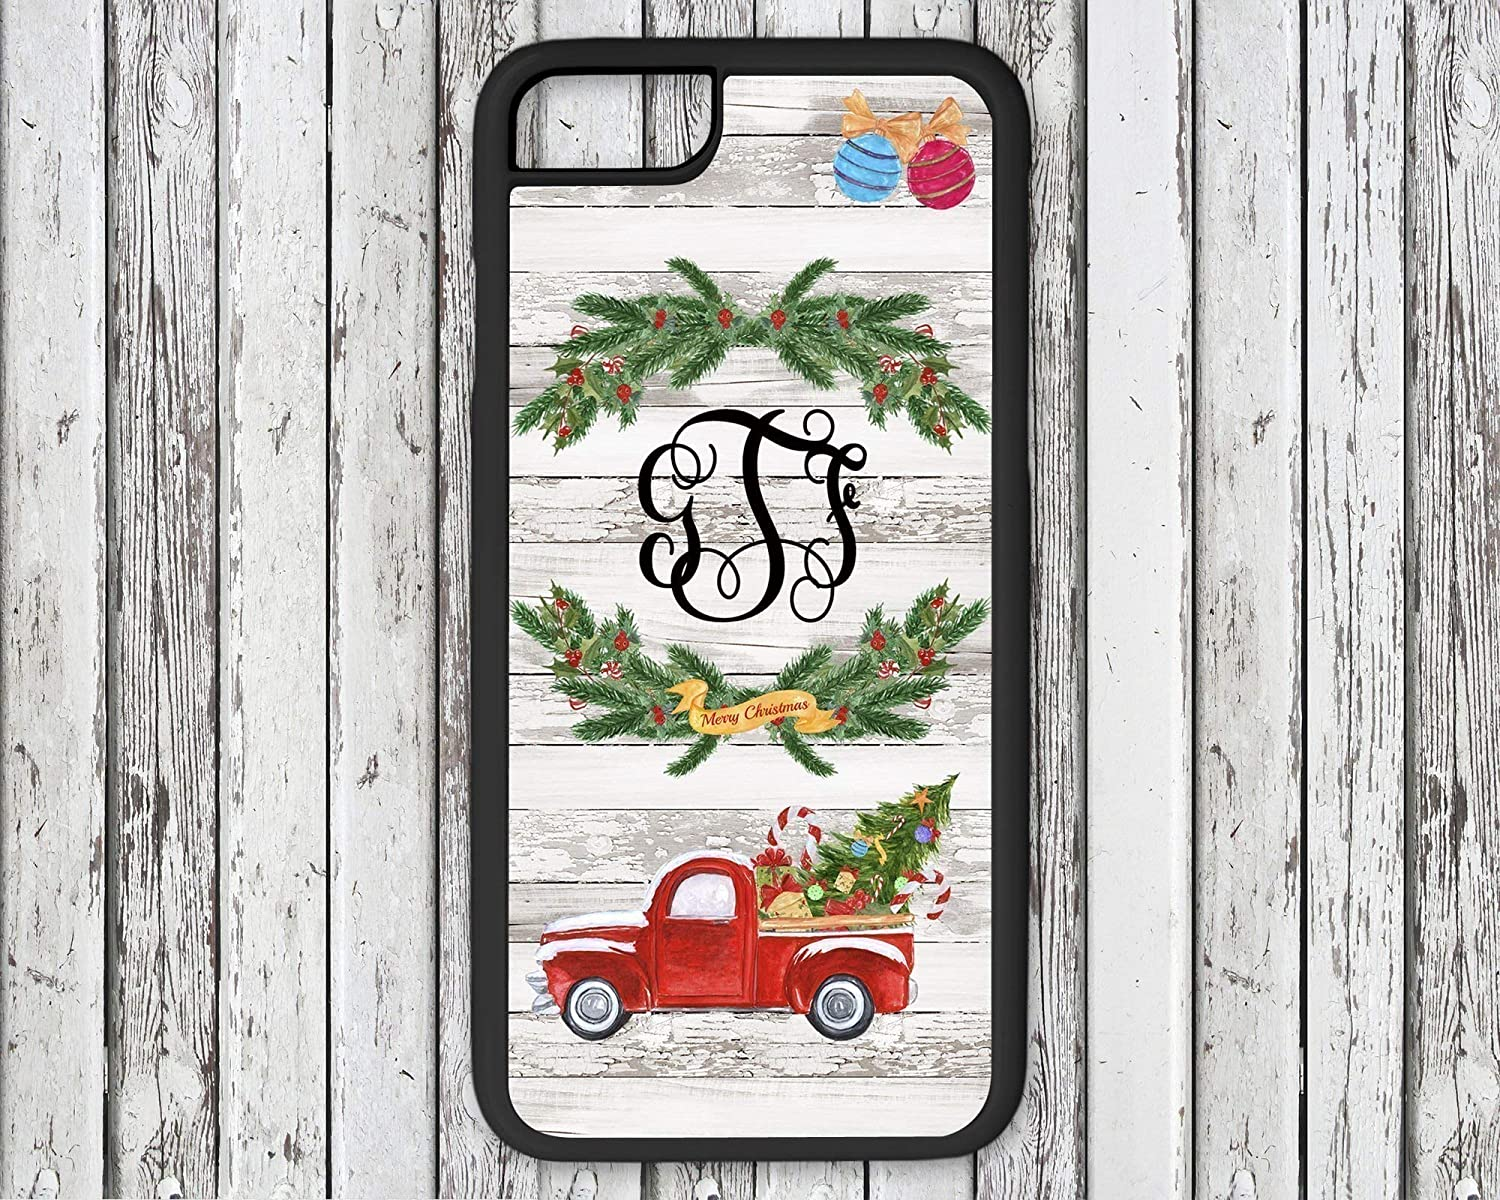 Personalized Monogram Red Christmas Truck Phone Case White Distressed Wood Background iPhone X 6 7 8 Plus